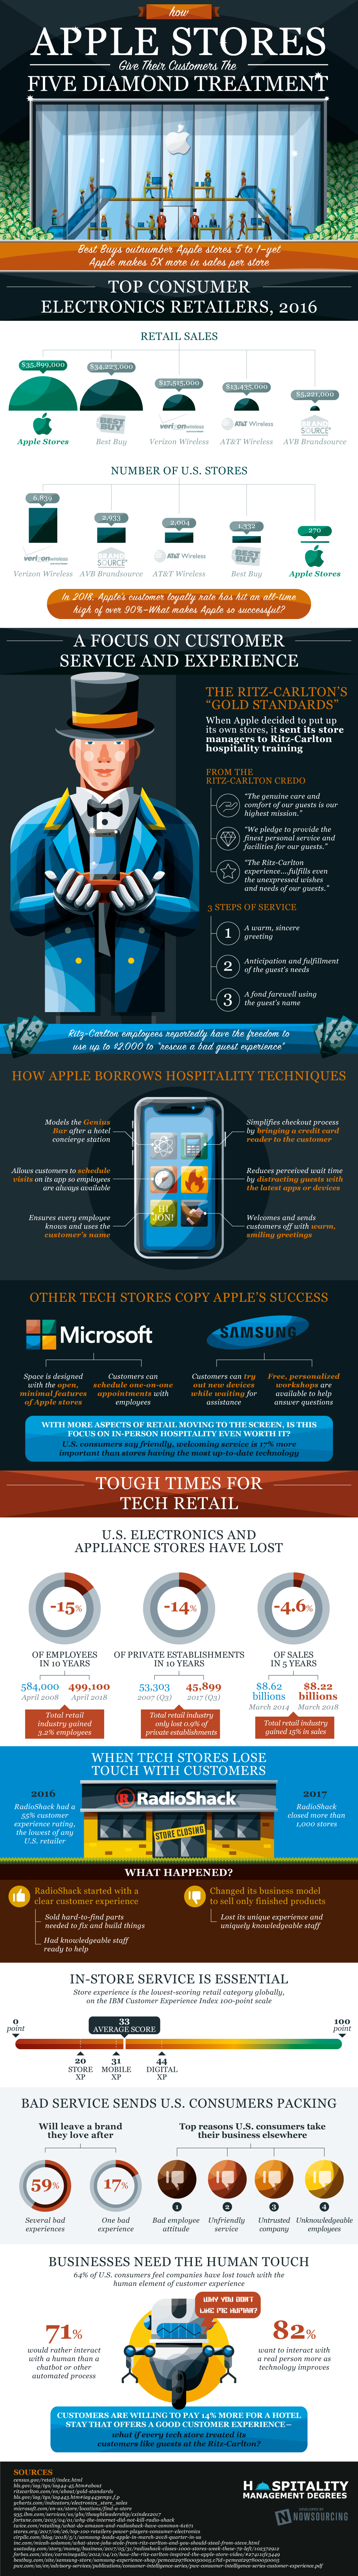 Five-Star Vs Five-Diamond: The Unique Apple Store Experience - Infographic